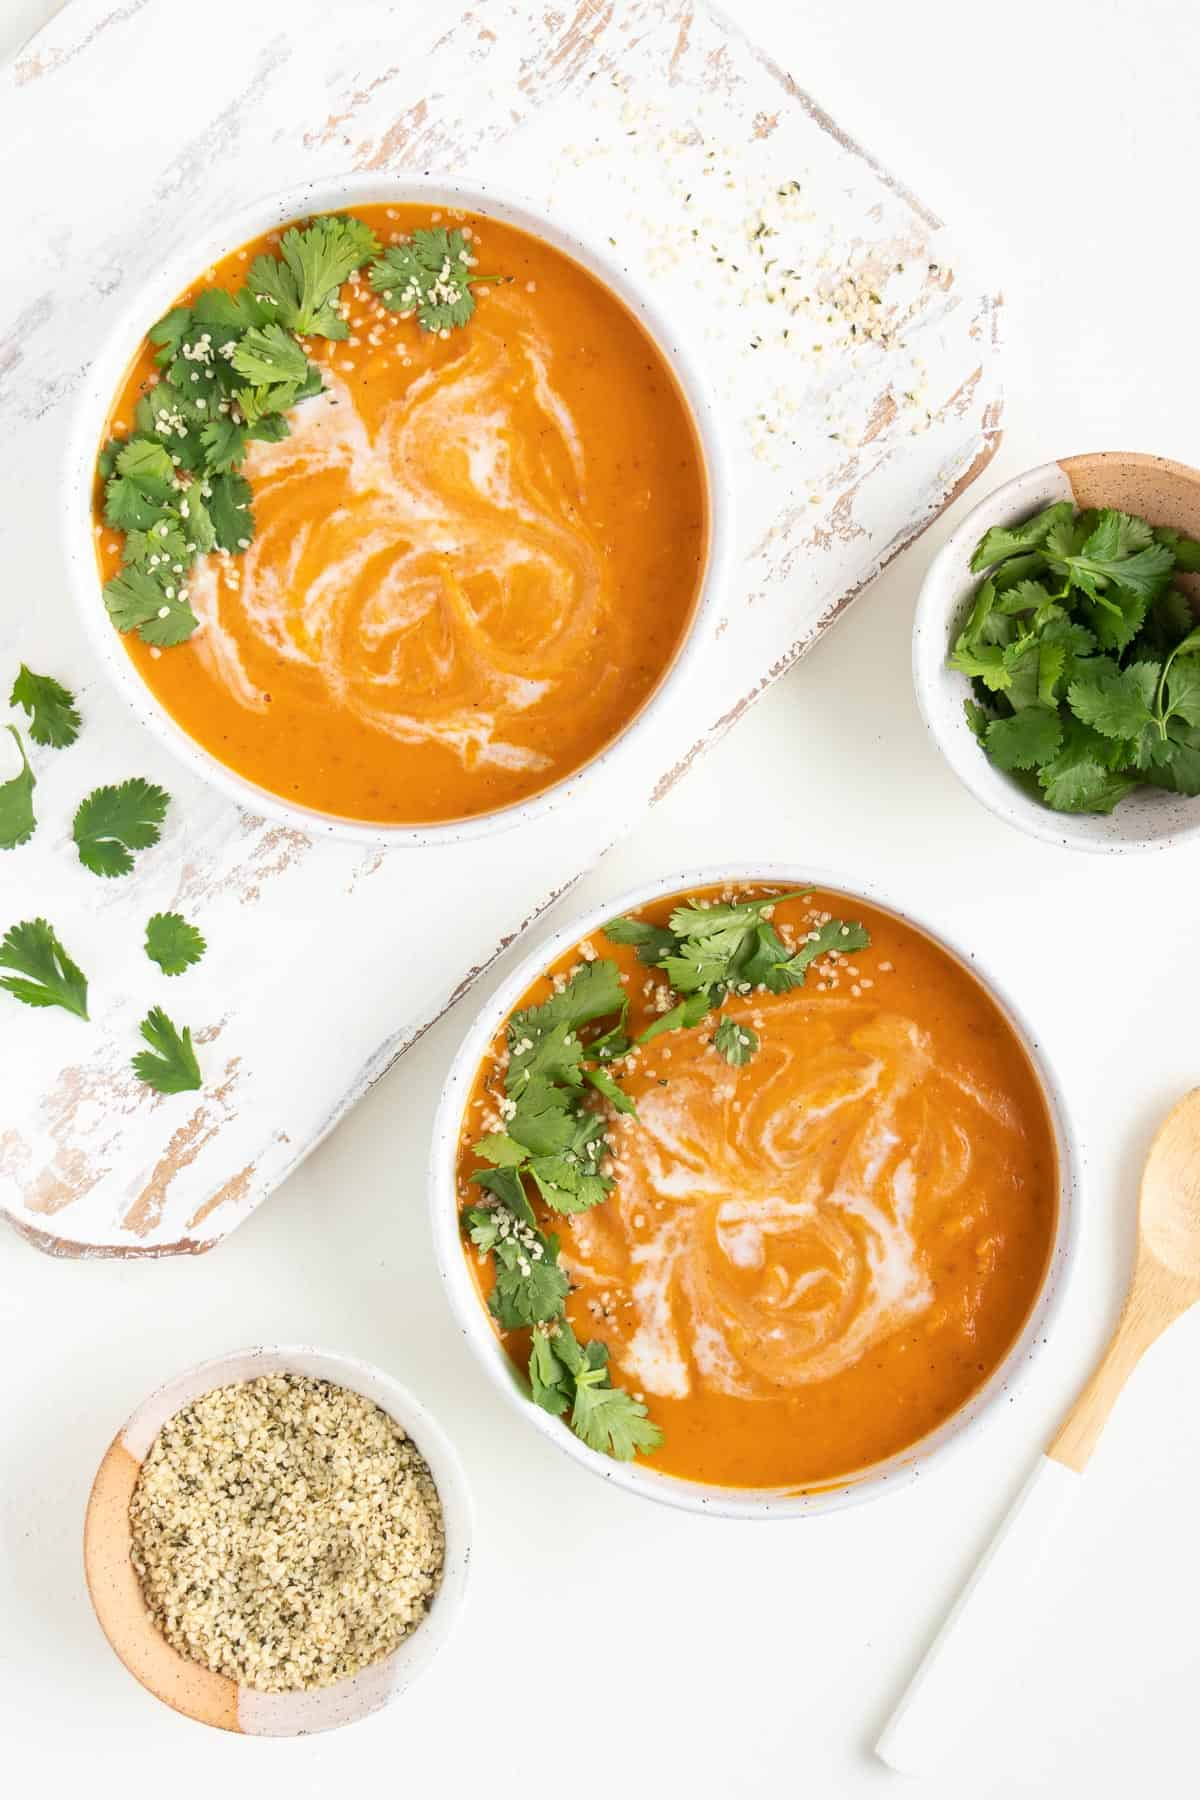 orange soup in two white bowls next to a wooden spoon, a bowl of hemp seeds, and a bowl of cilantro